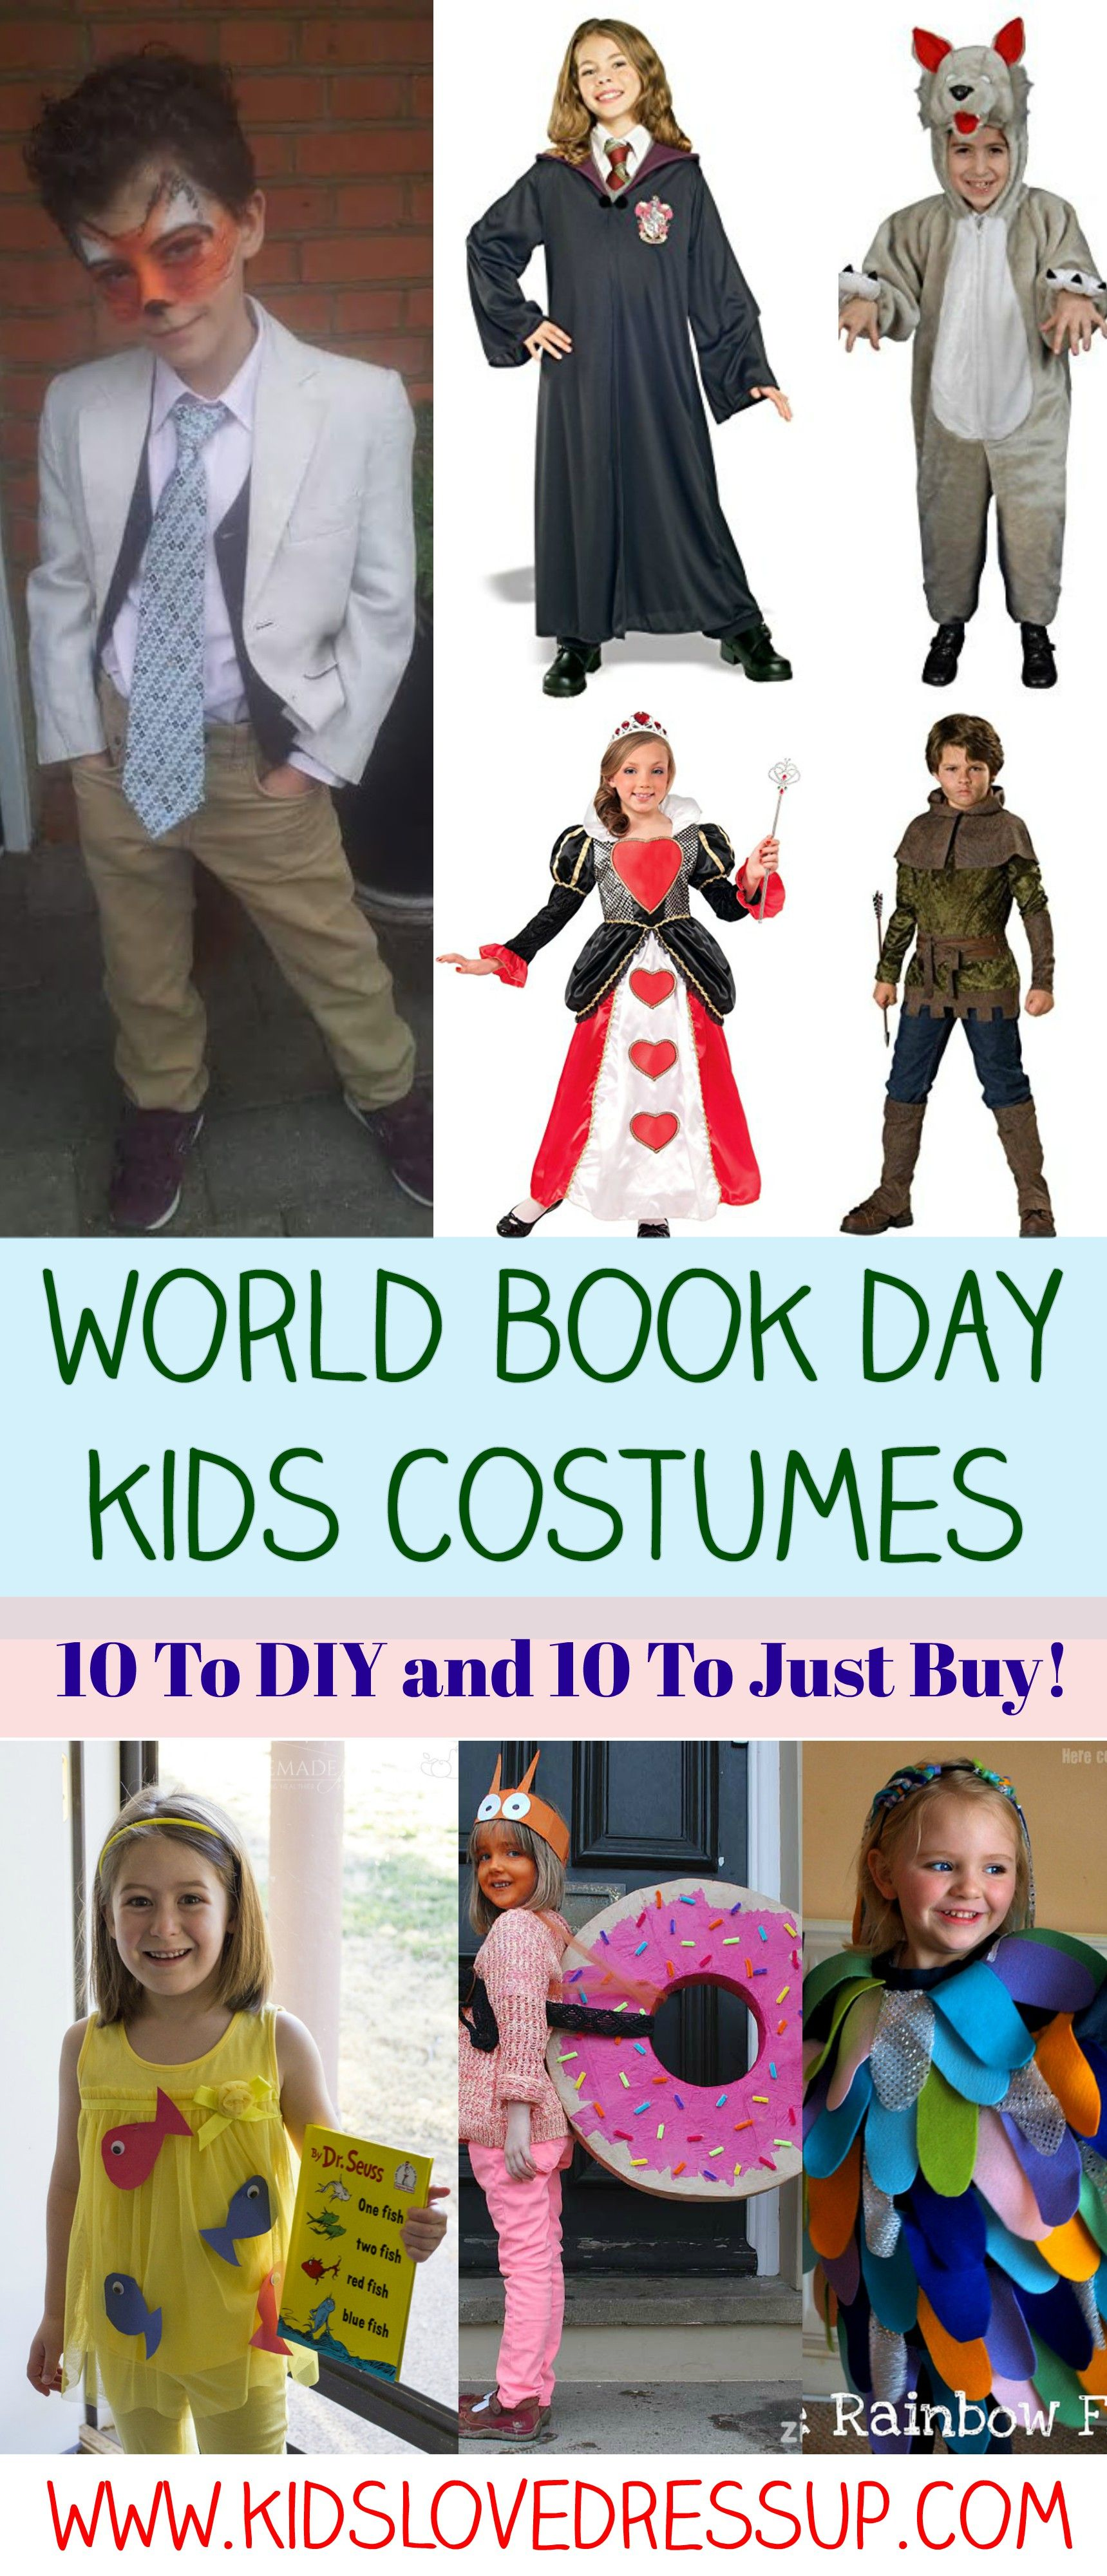 World Book Day Kids Costumes Are You Going To Diy One Or Just Buy One Book Character Costumes Childrens Book Character Costumes Boys Book Character Costumes